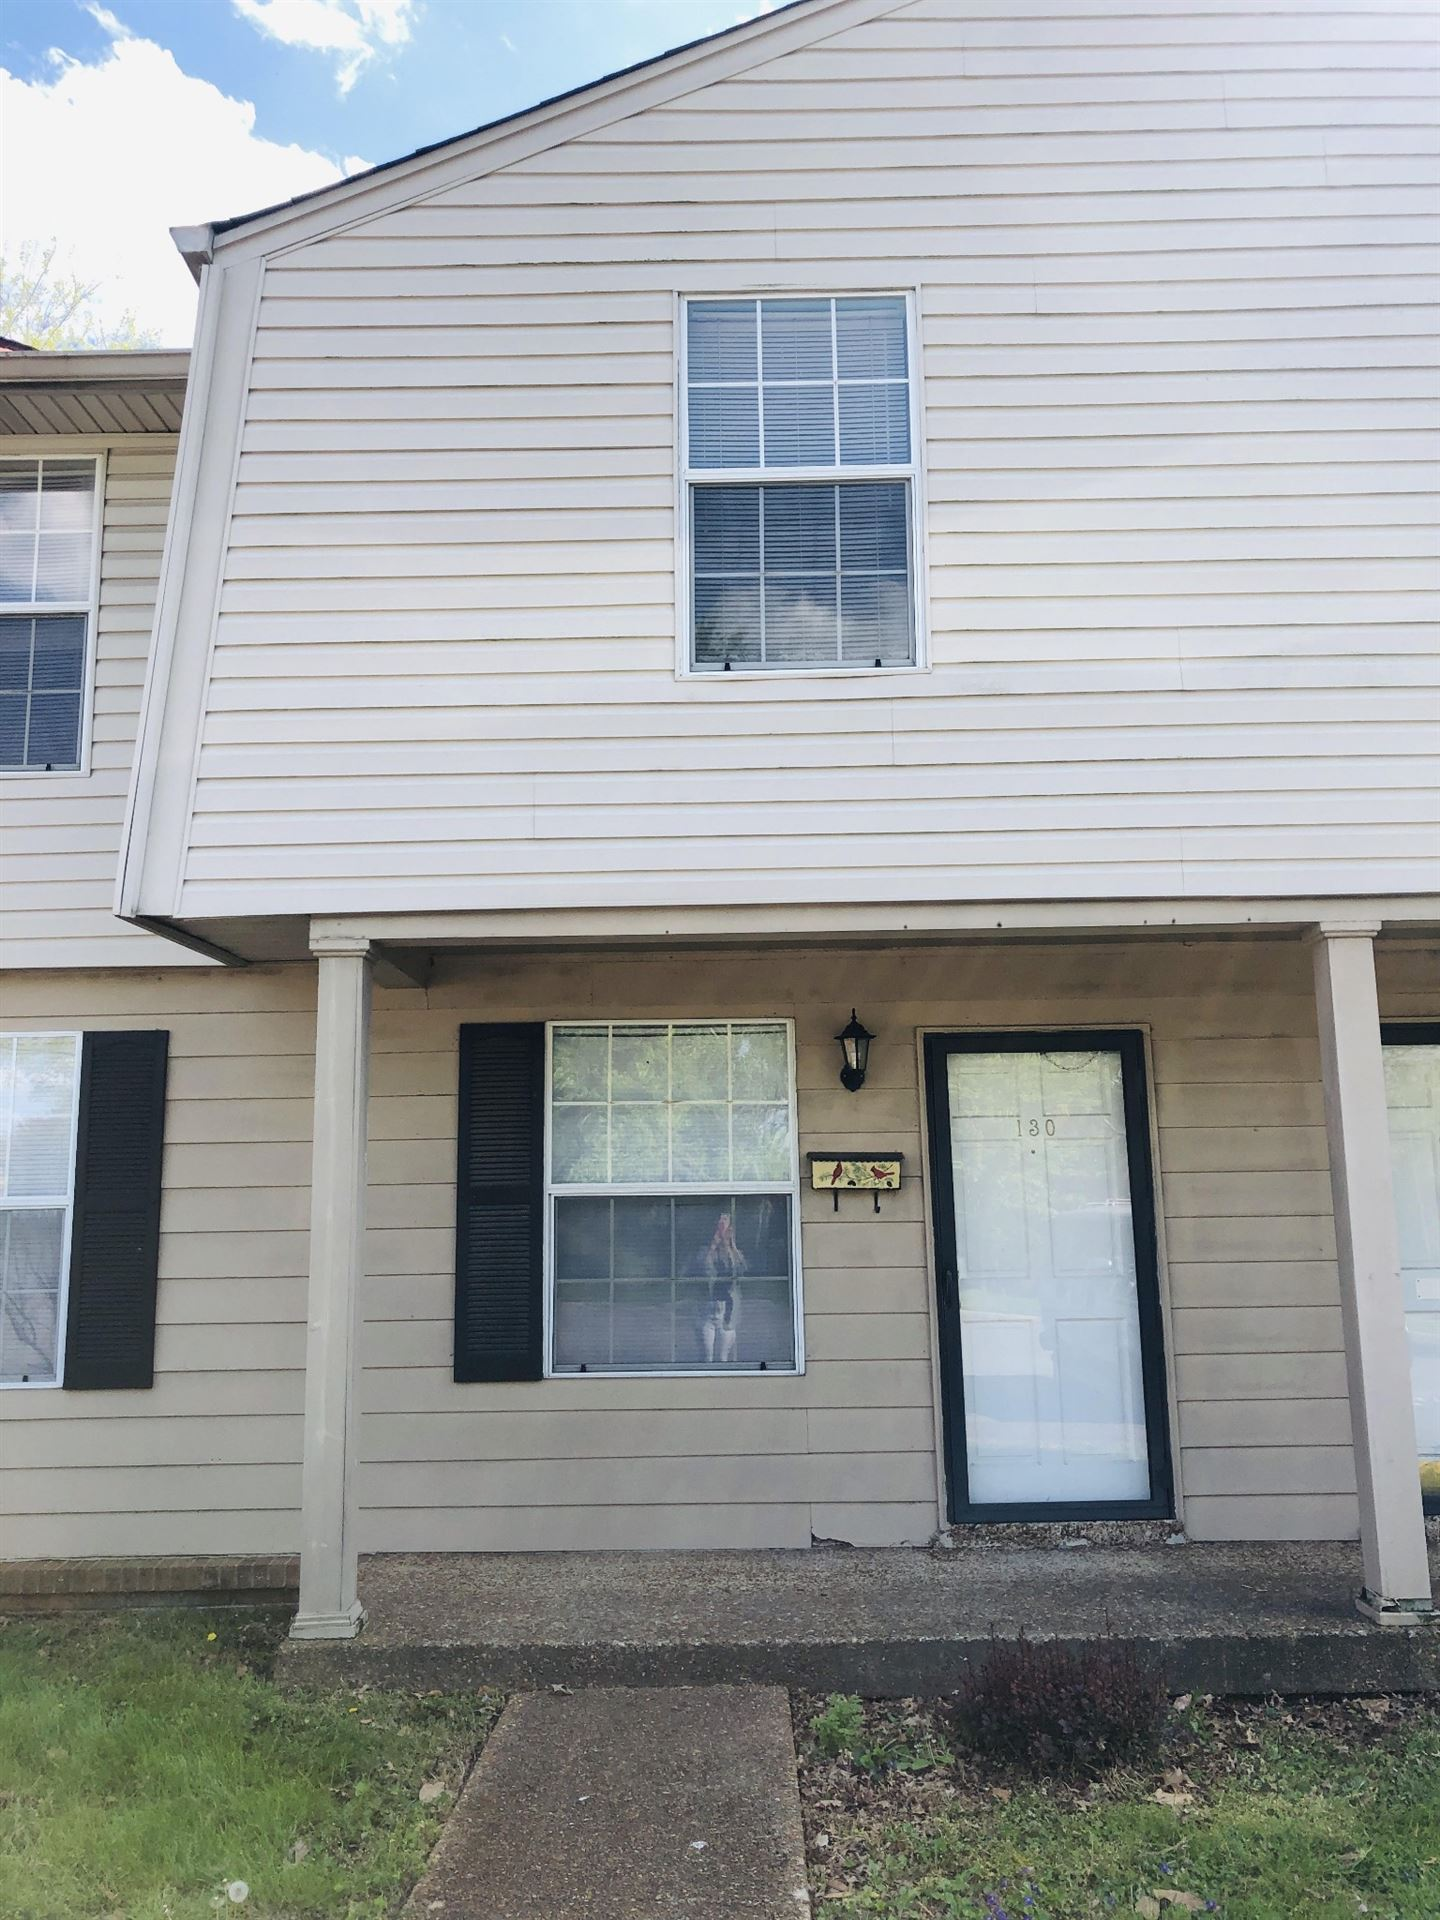 Photo of 5510 Country Dr #130, Nashville, TN 37211 (MLS # 2246306)